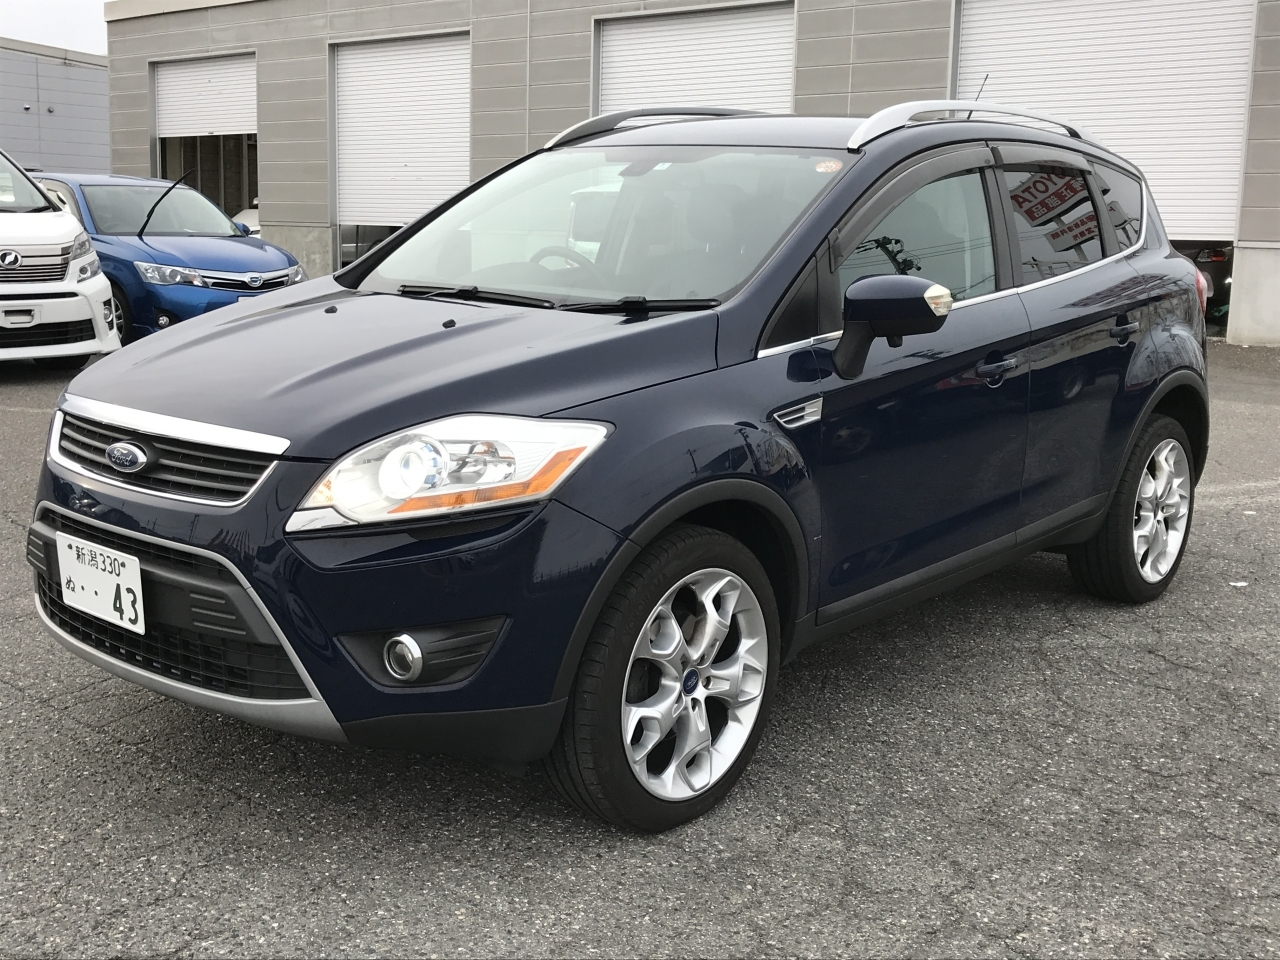 Buy used FORD KUGA at Japanese auctions